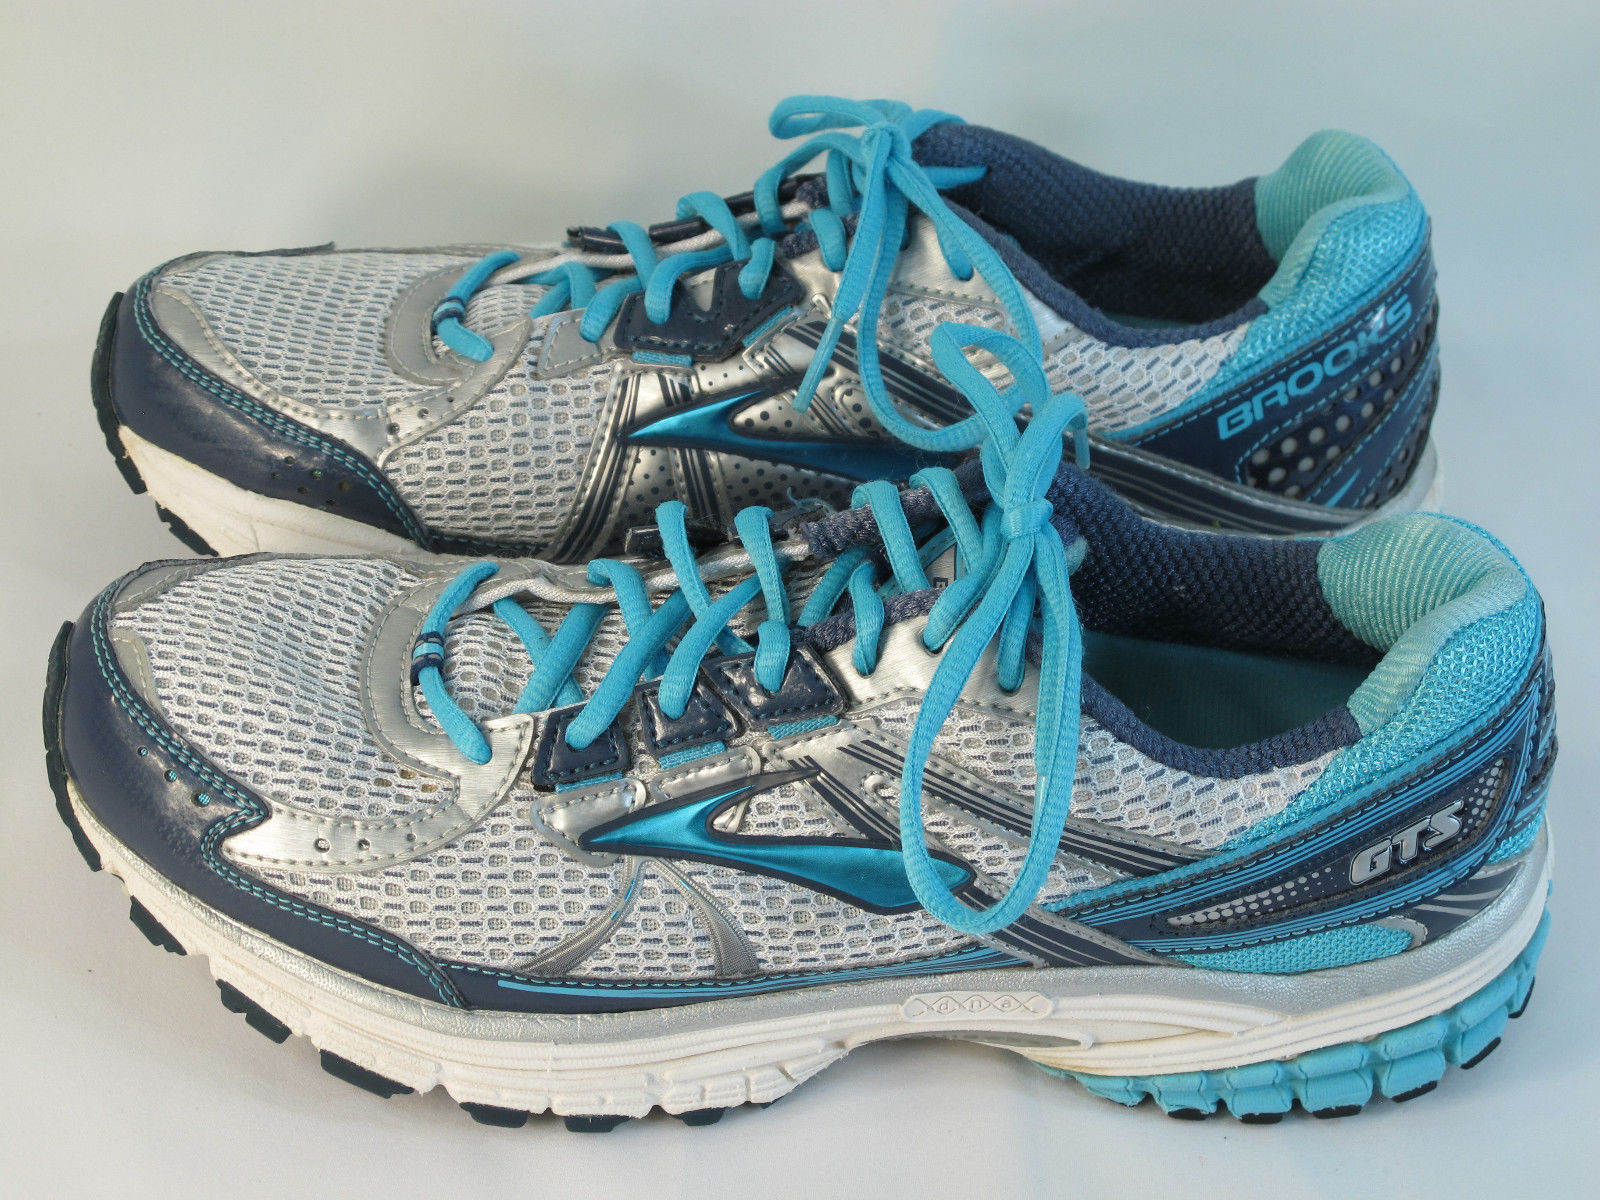 6722d690cbc Brooks Adrenaline GTS 13 Running Shoes Women s Size 11 (2A) US Excellent  Plus